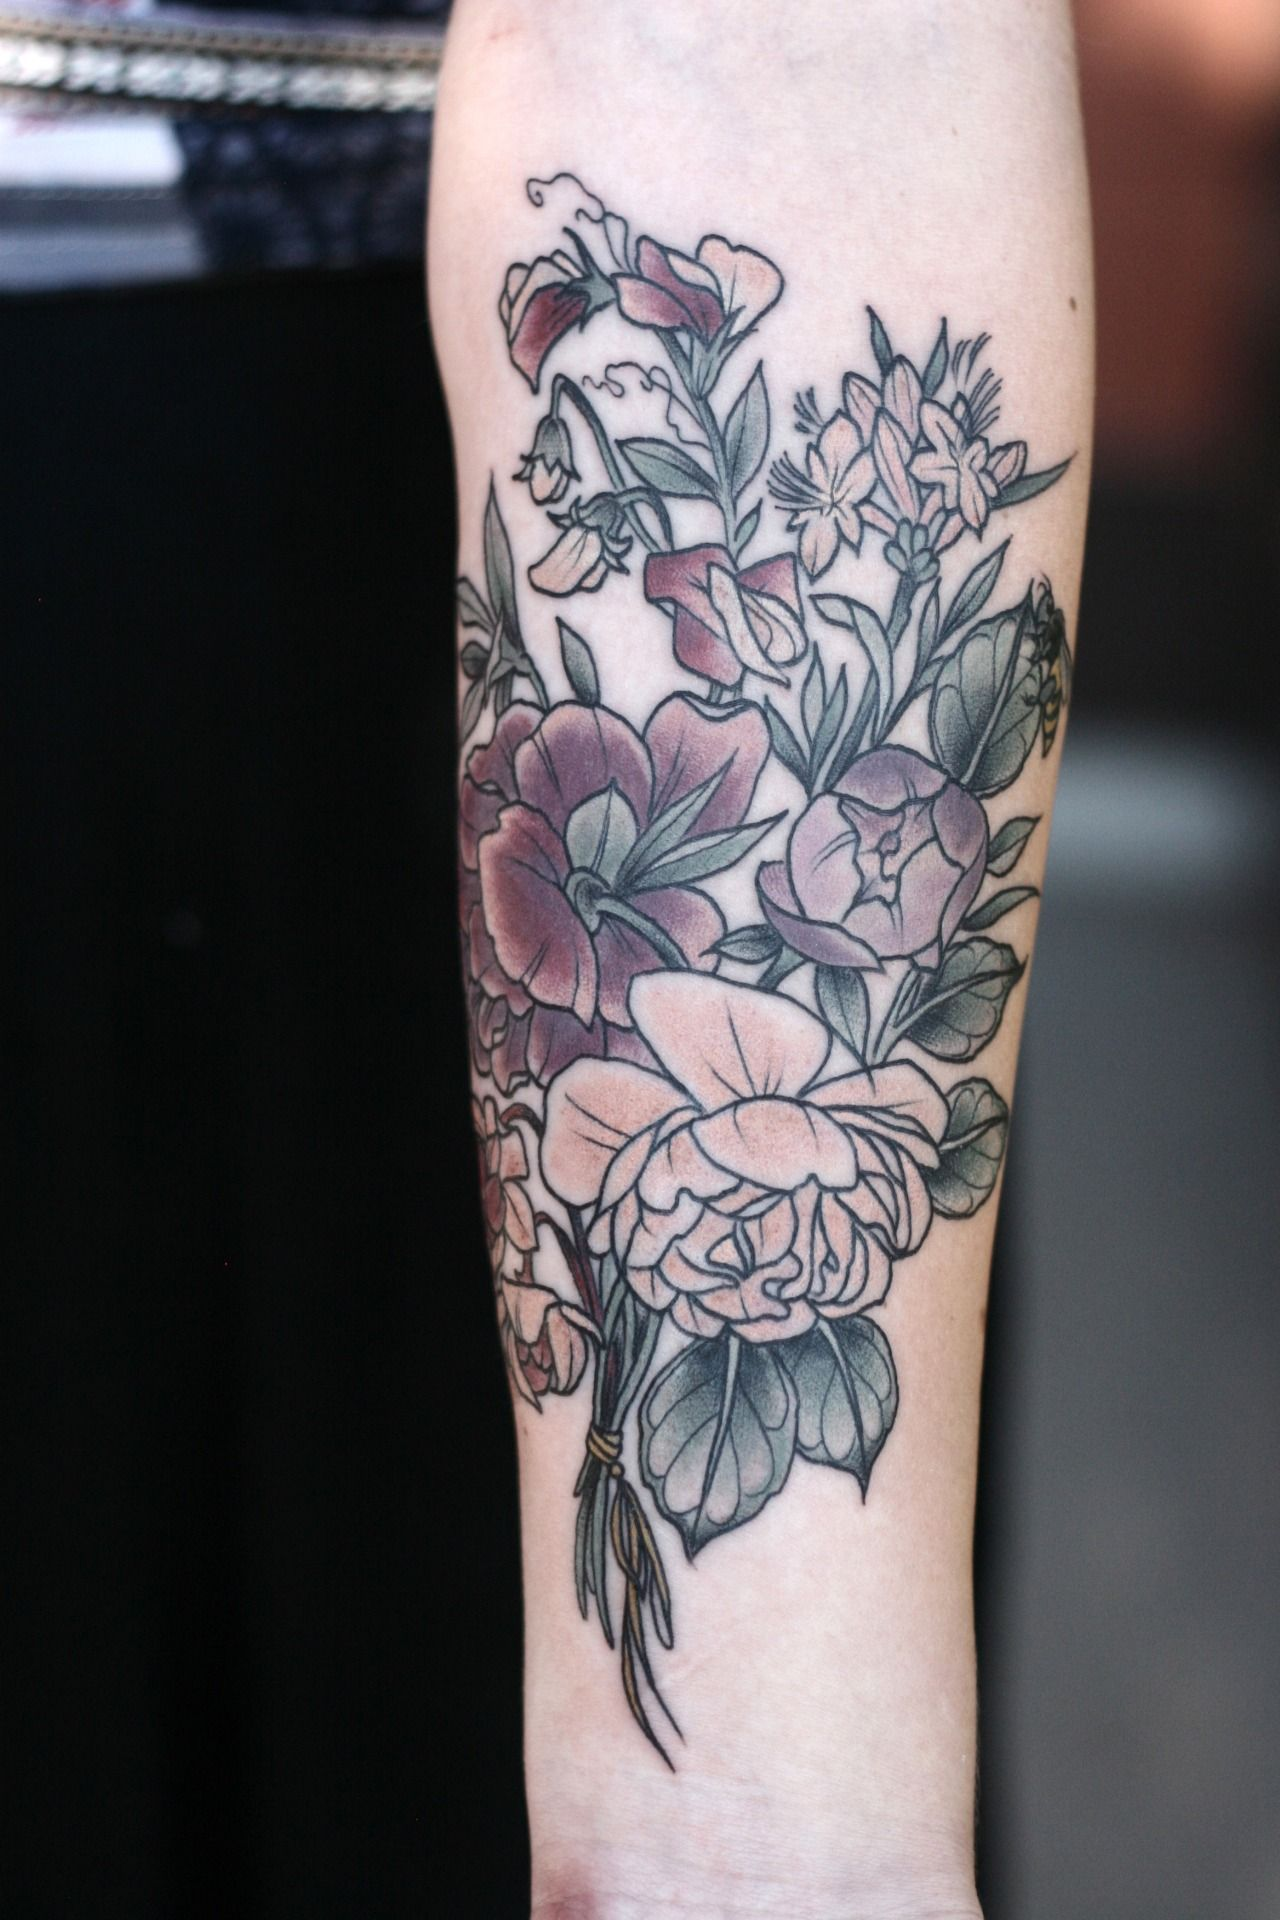 pretty garden rose, peony, sweet pea, honeysuckle and pitcher plant blossom bouquet for Chelsea! so lovely as always to tattoo you and hang out with you, girl.